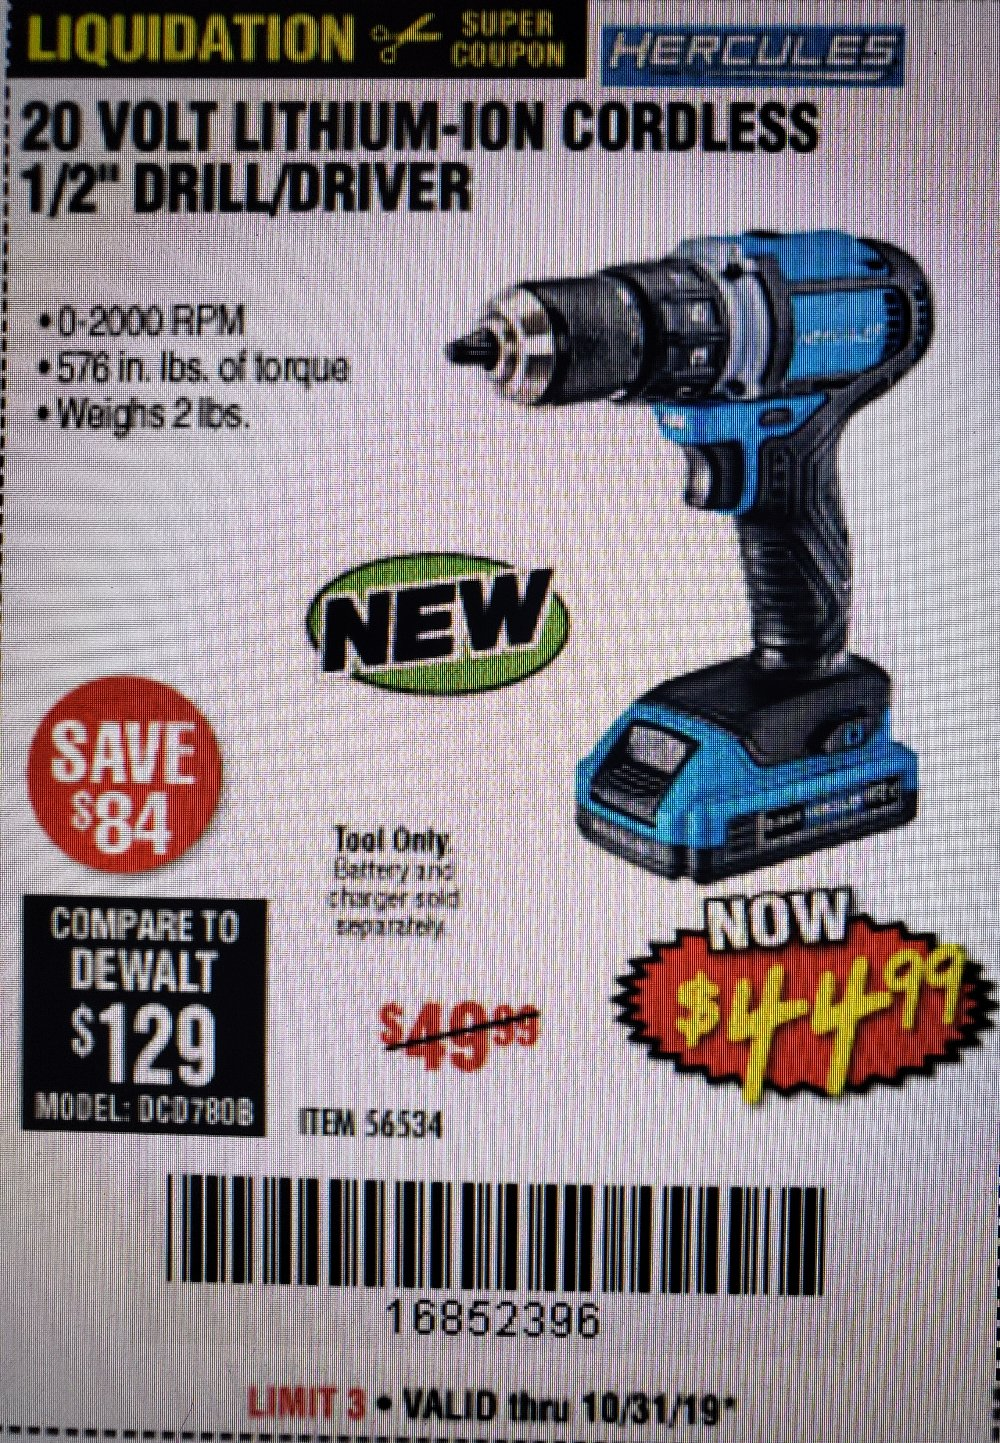 Harbor Freight Coupon, HF Coupons - 20 Volt Lithium-ion Cordless 1/2